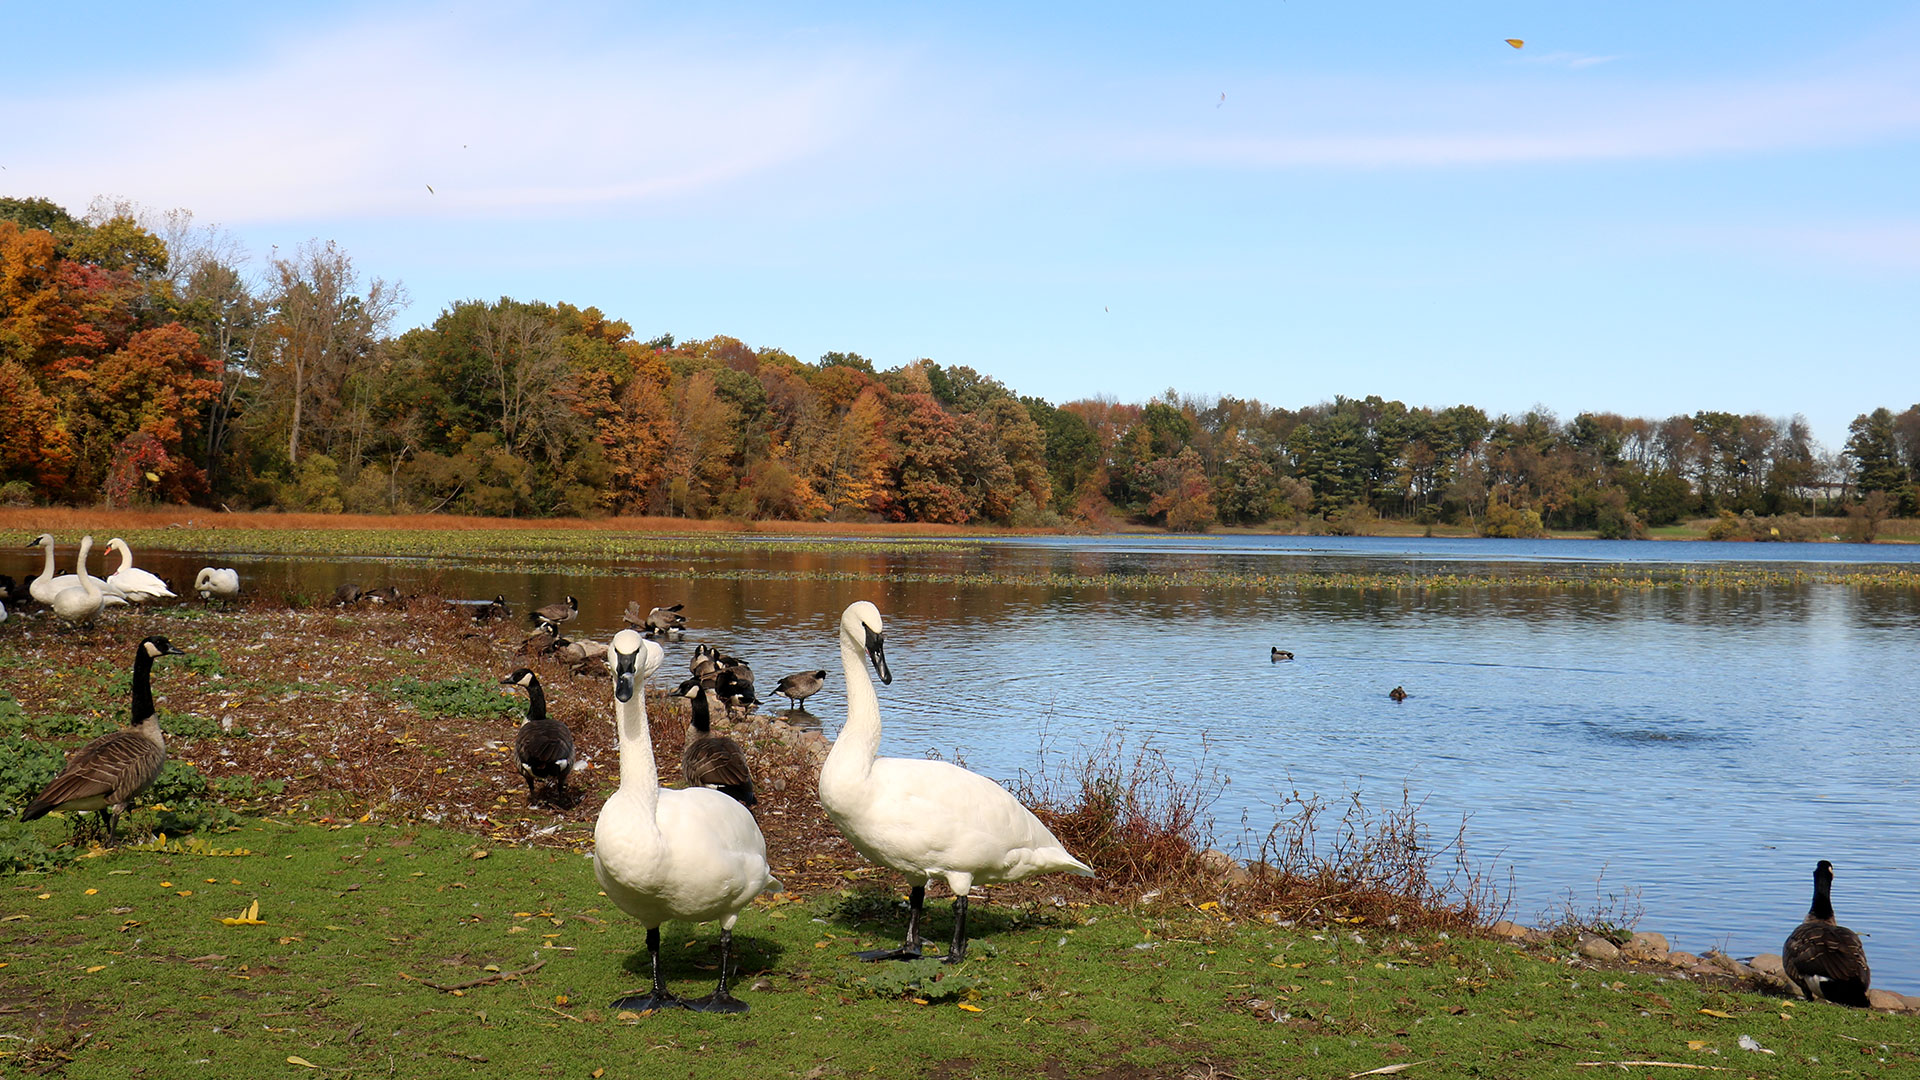 A pair of Trumpeter Swans stand together on the shore of Wintergreen Lake in autumn.